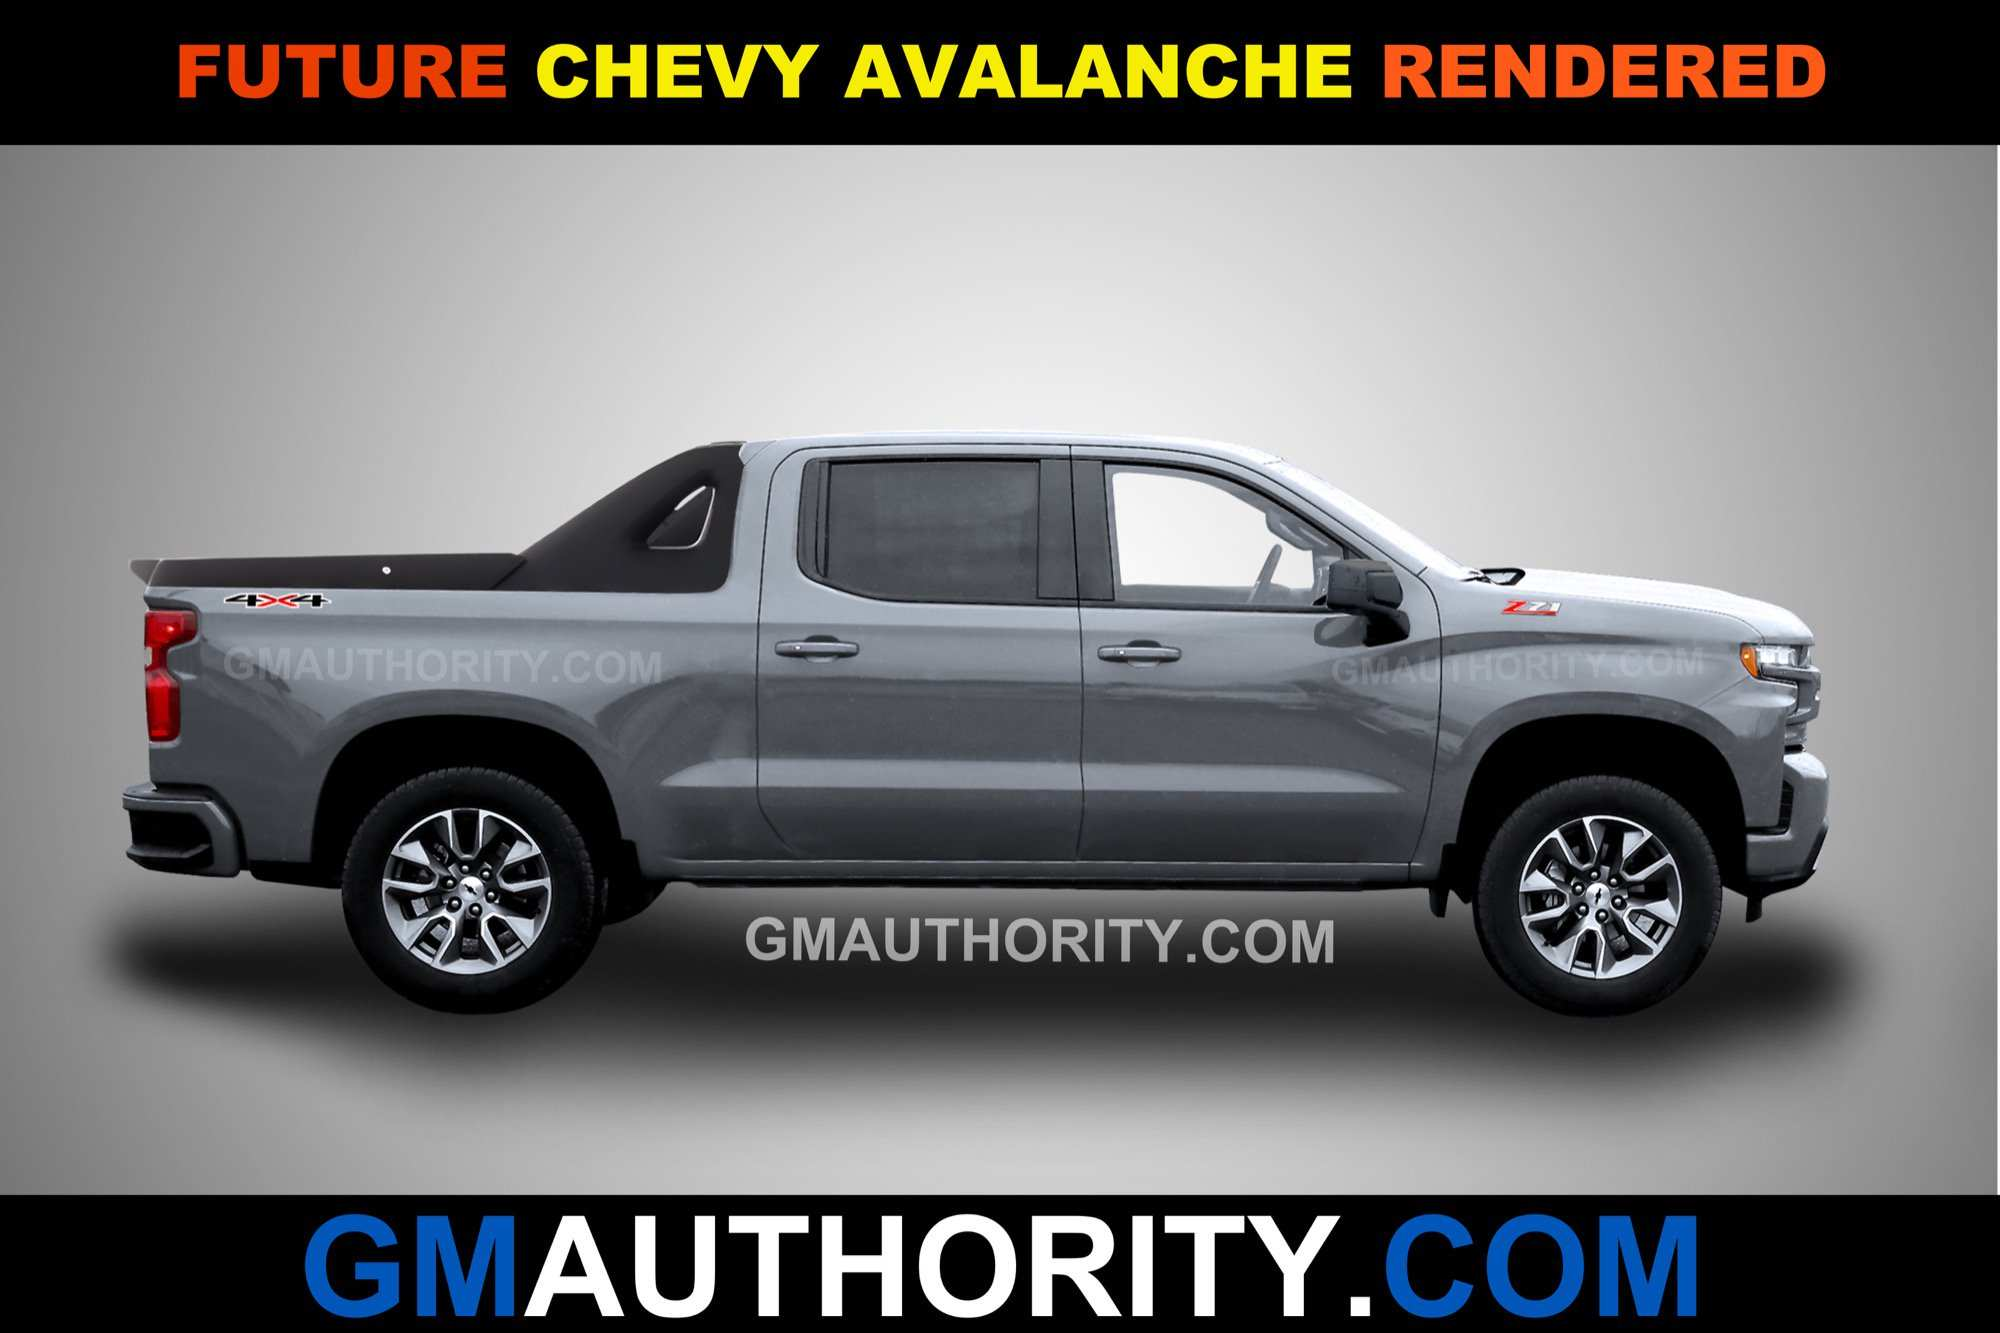 54 Best 2020 Chevy Avalanche Wallpaper